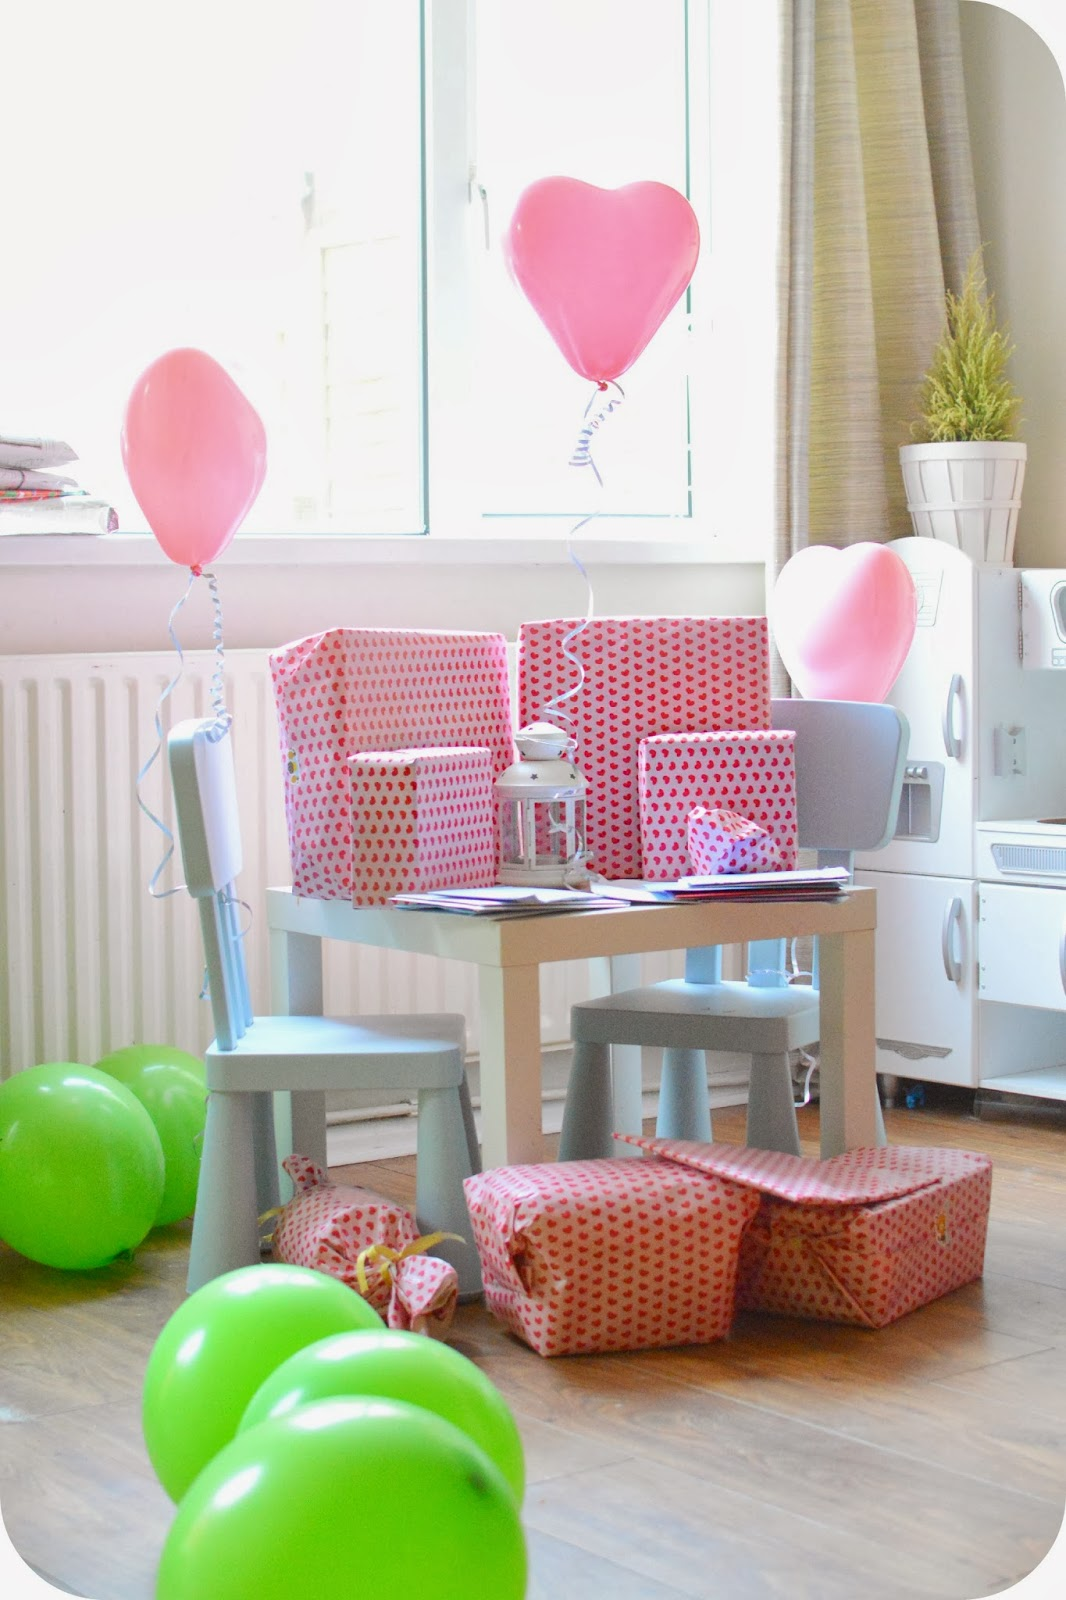 OUR LITTLE VALENTINES: BIRTHDAY CELEBRATIONS 2014